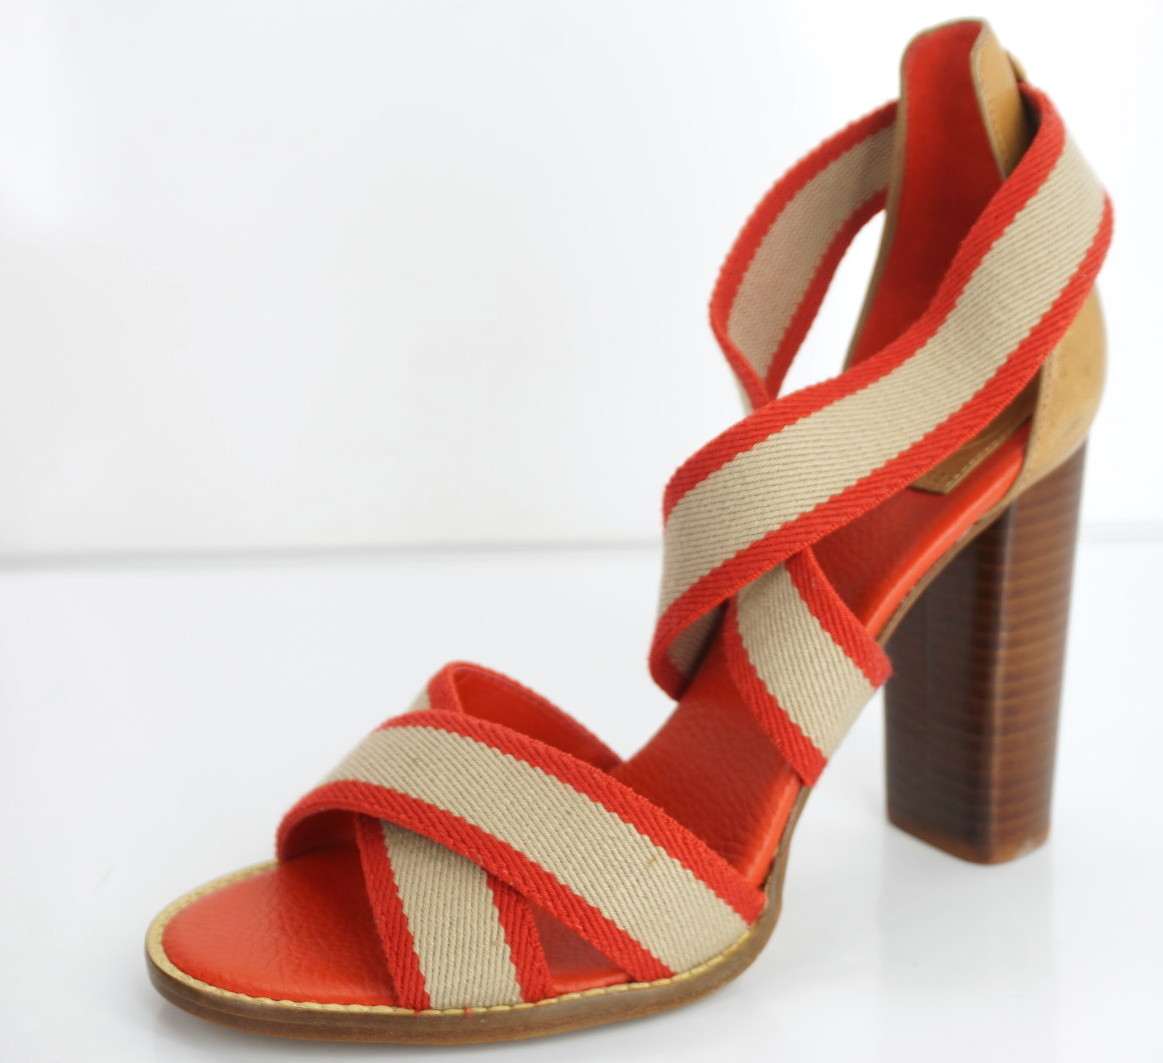 Tory Burch Laurie Red Tan Striped Canvas High Heel Ankle Sandals SZ 9.5 New  285